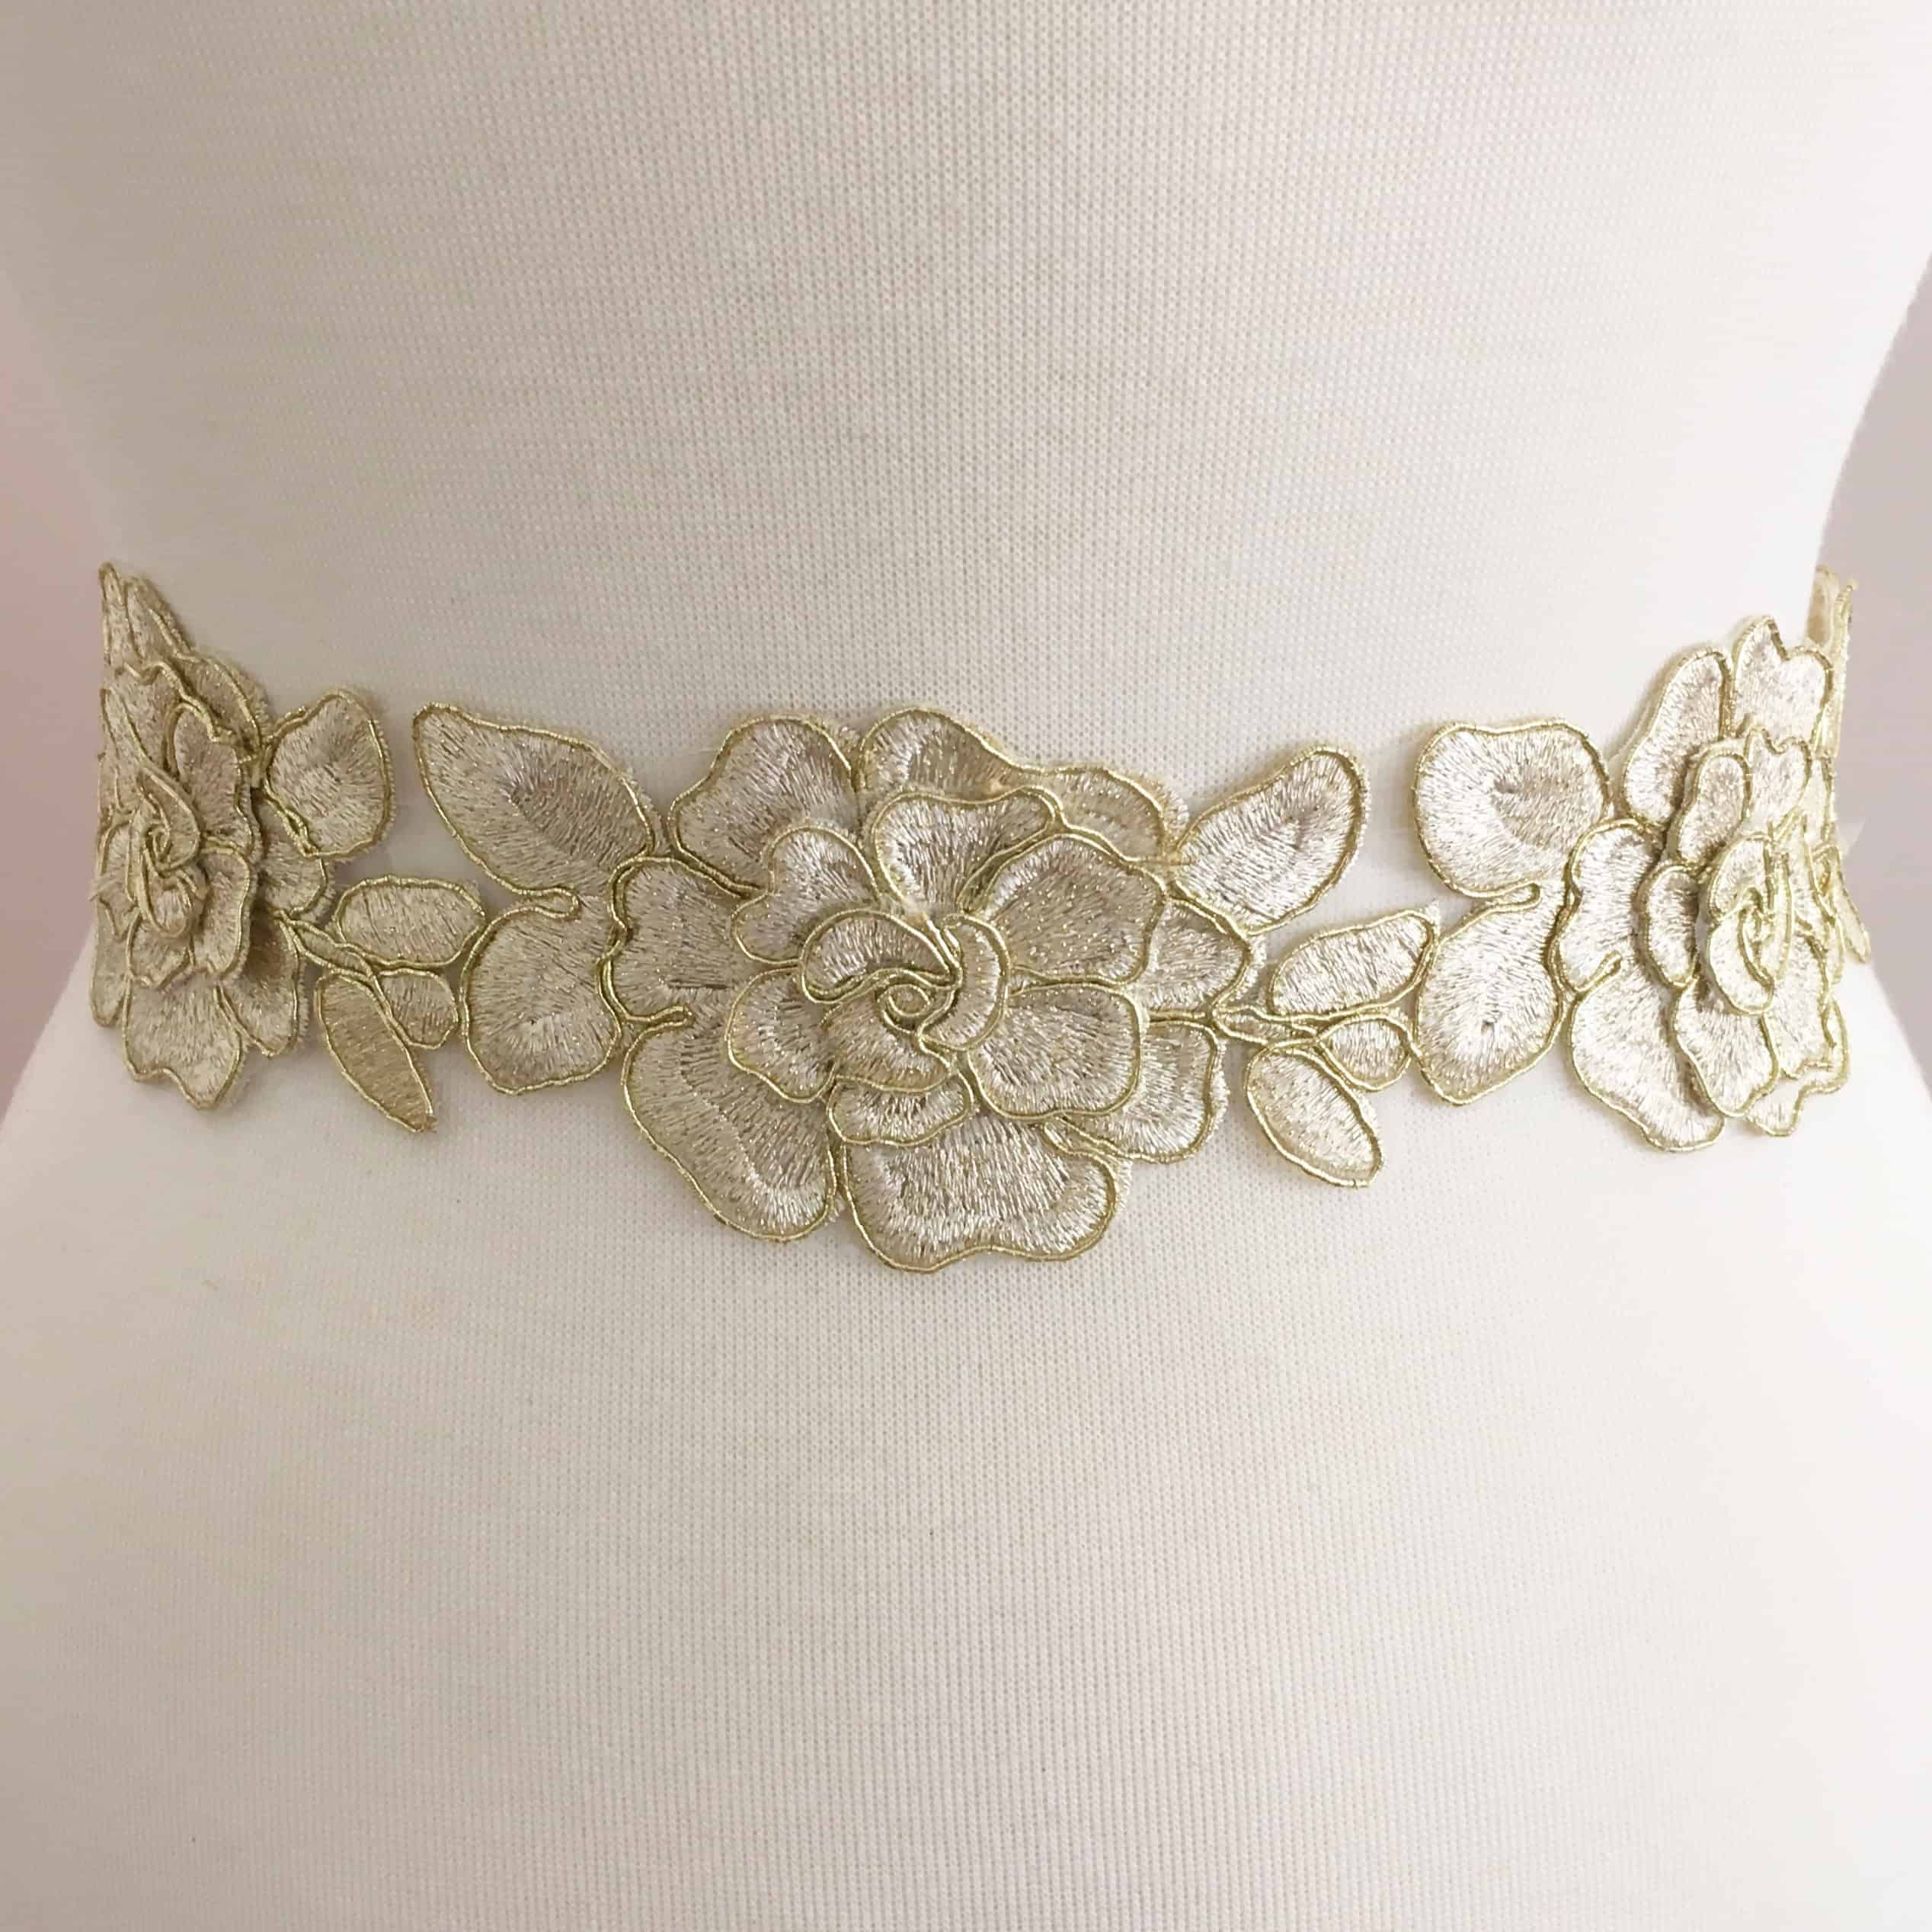 Metallic Embroidered Scroll Trim